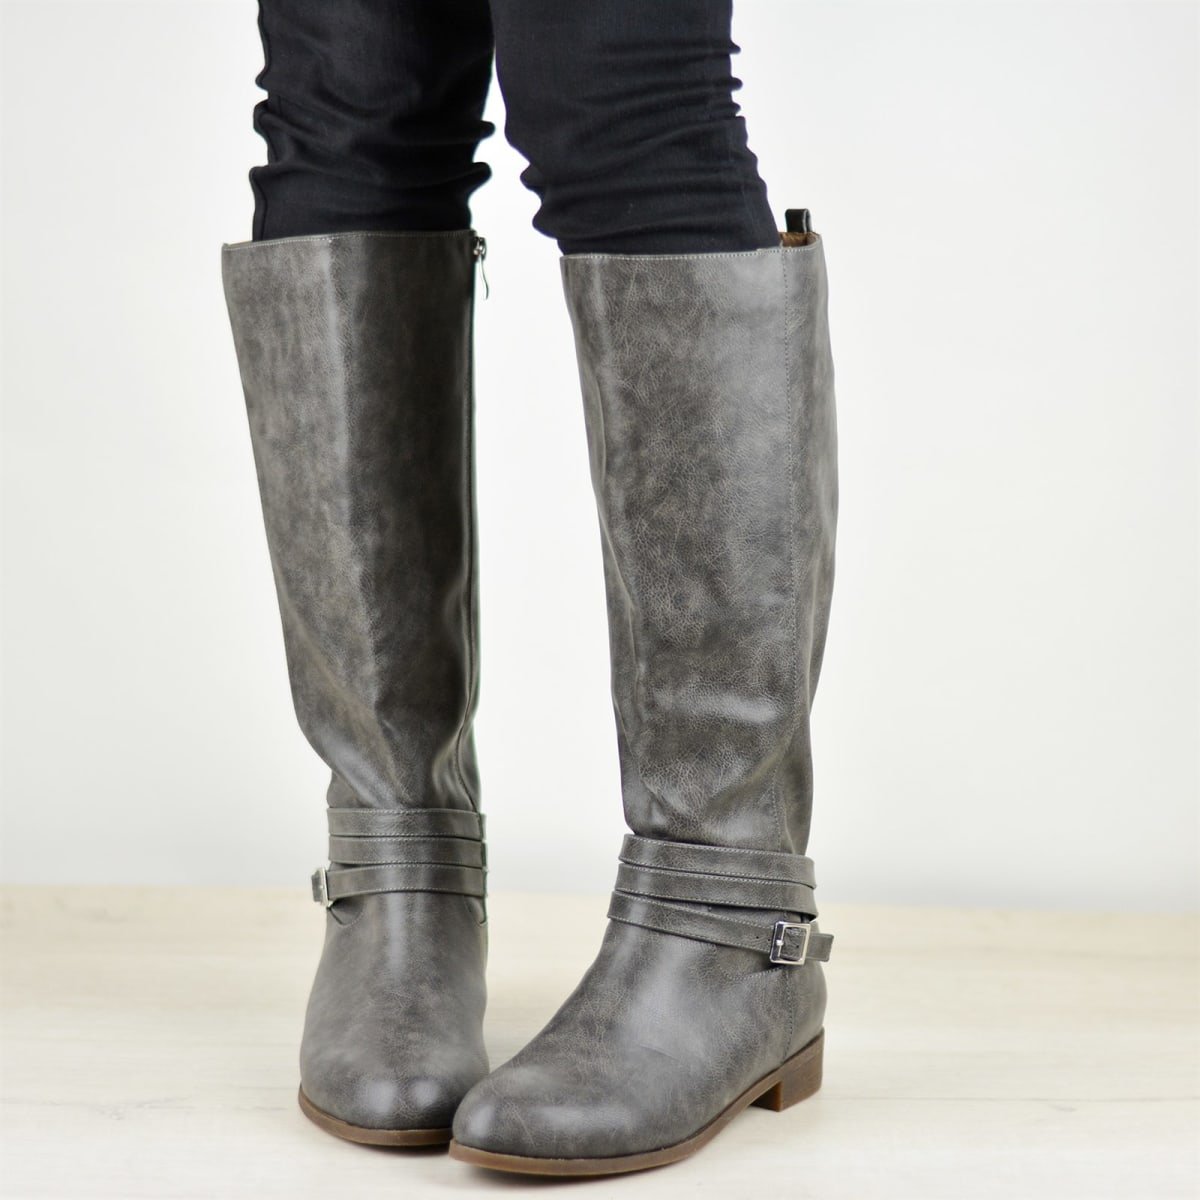 e15ec9ee952 Comfort Sole Strap Riding Boot